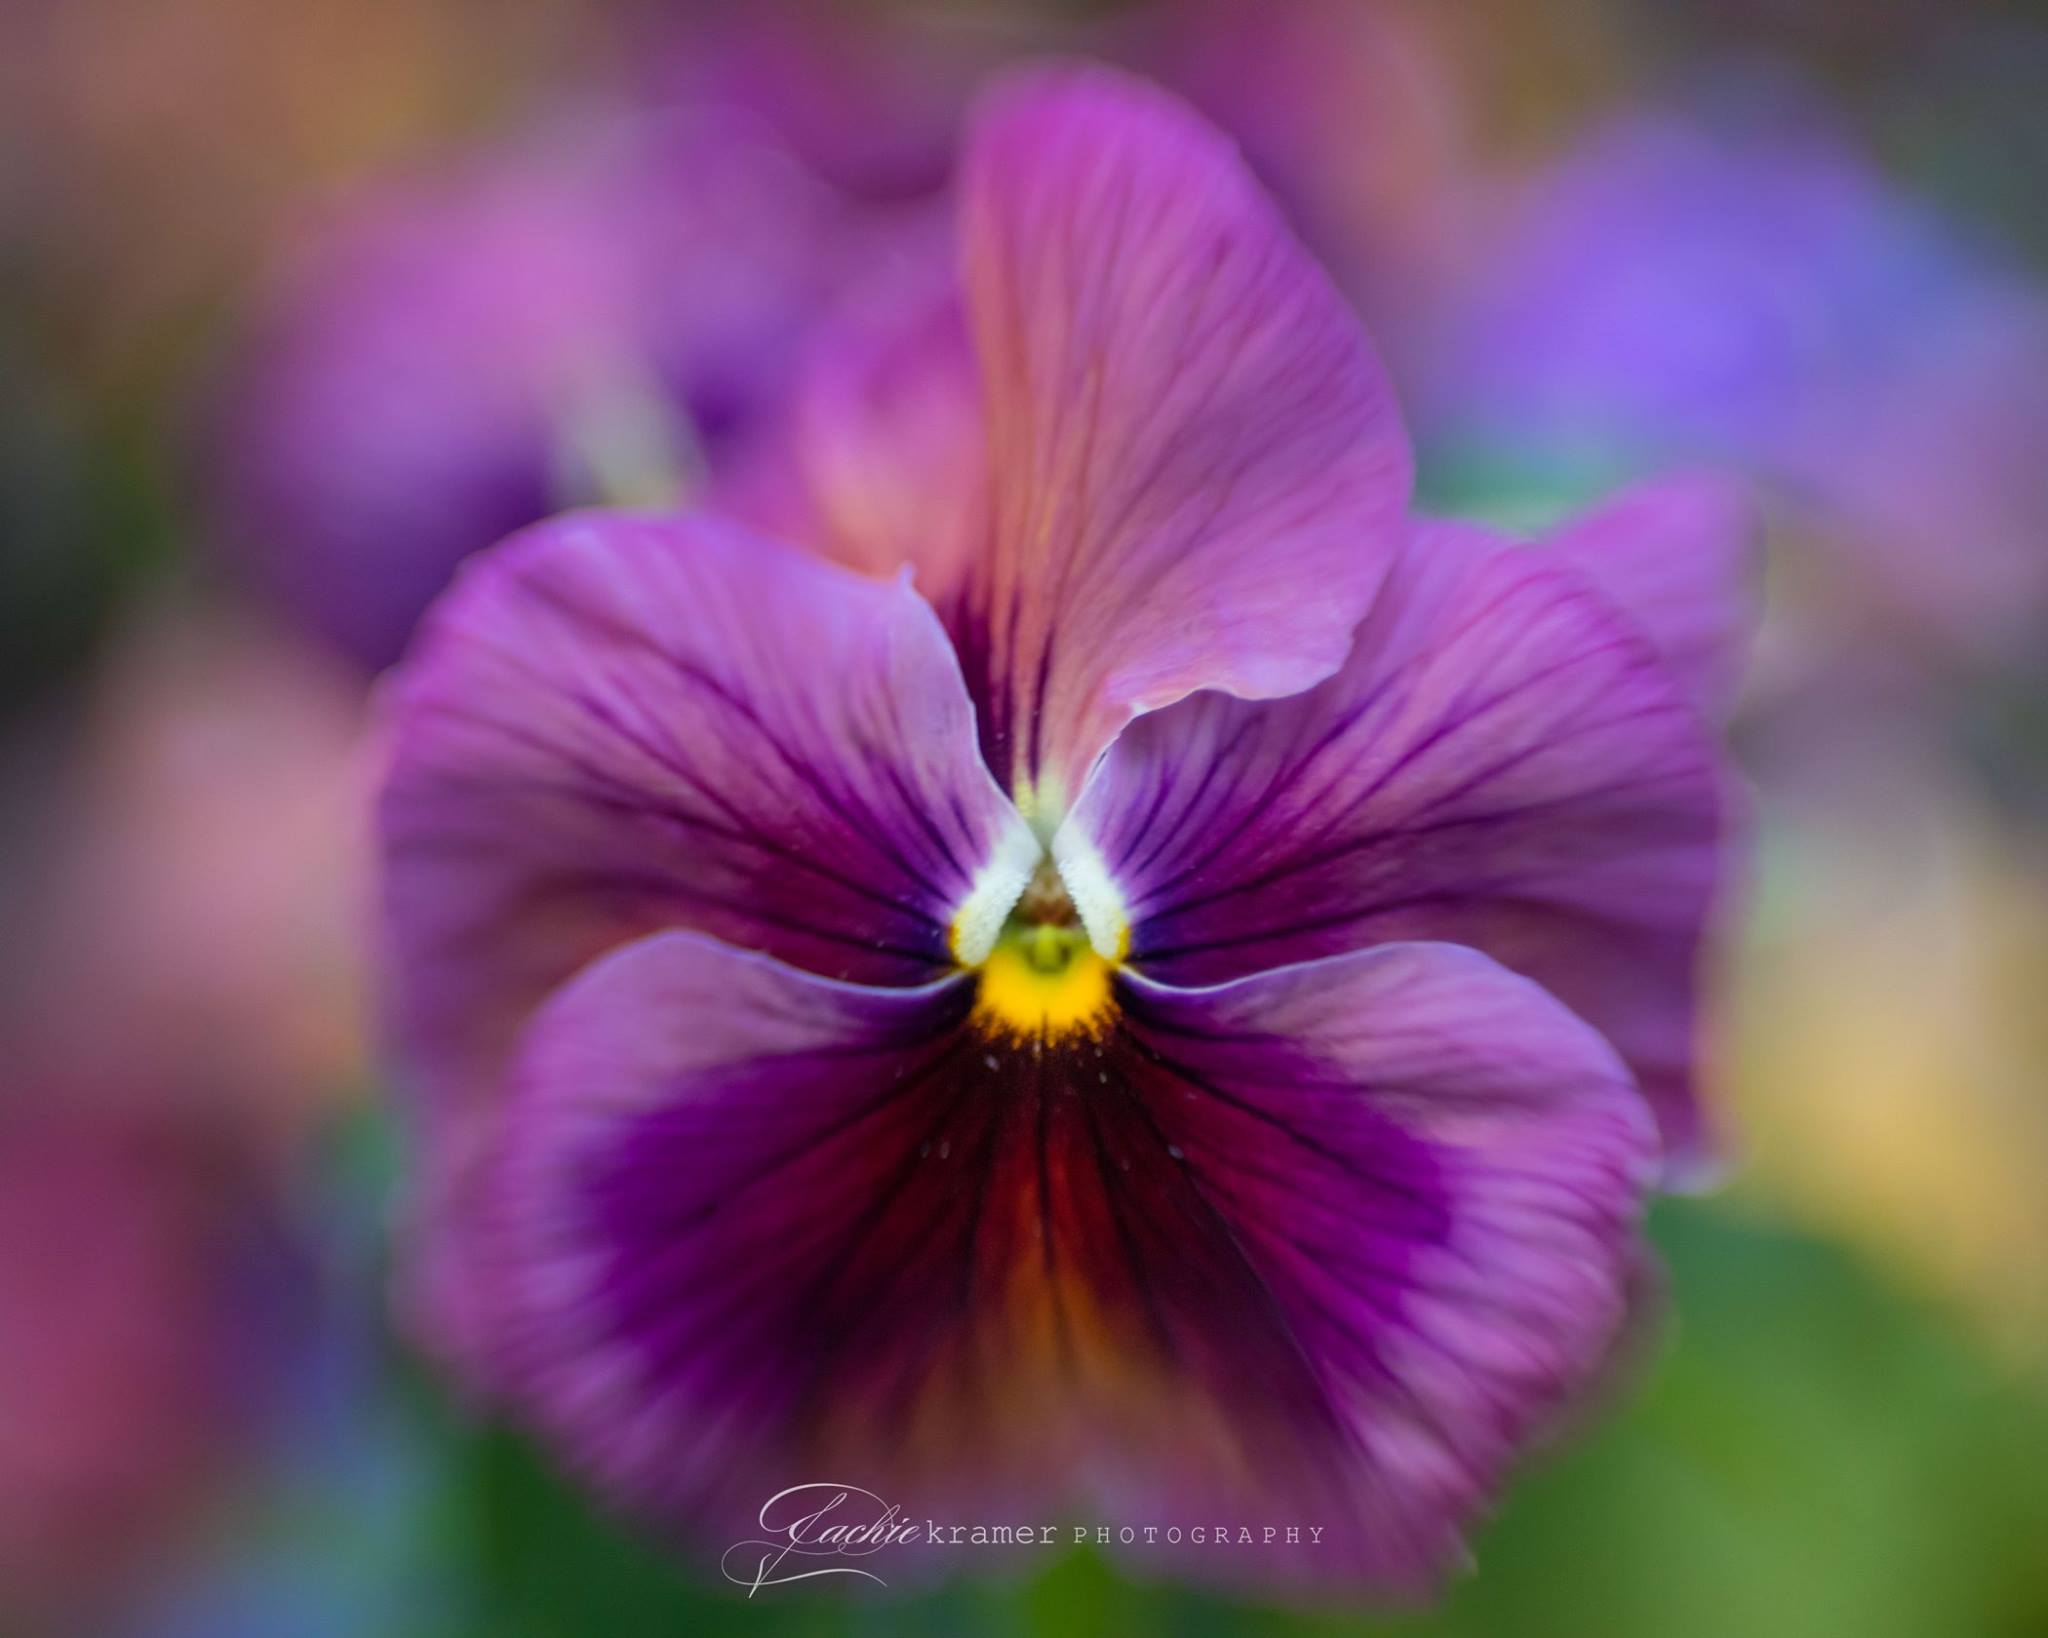 purple flower with yellow and white macro photography selective focus Lensbaby featured photos macro